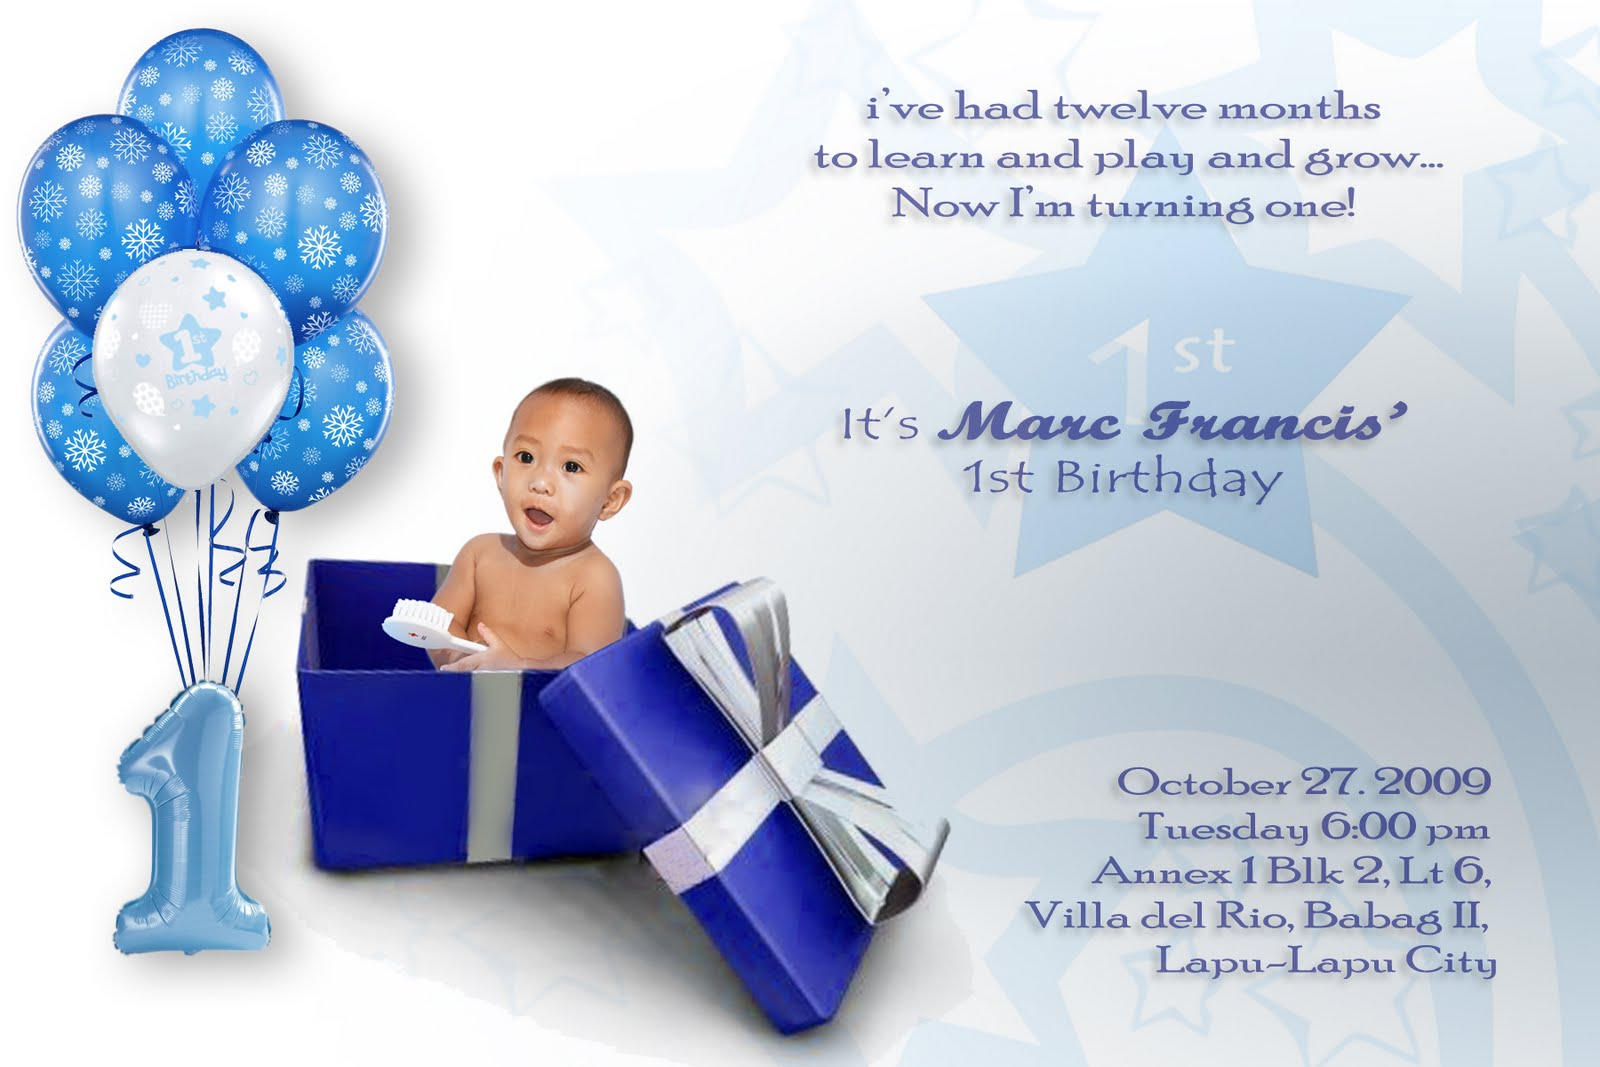 design 1st birthday invitation card ; 1st-birthday-invitation-cards-for-baby-boy-And-Get-Inspiration-to-Create-a-Nice-Invitation-1